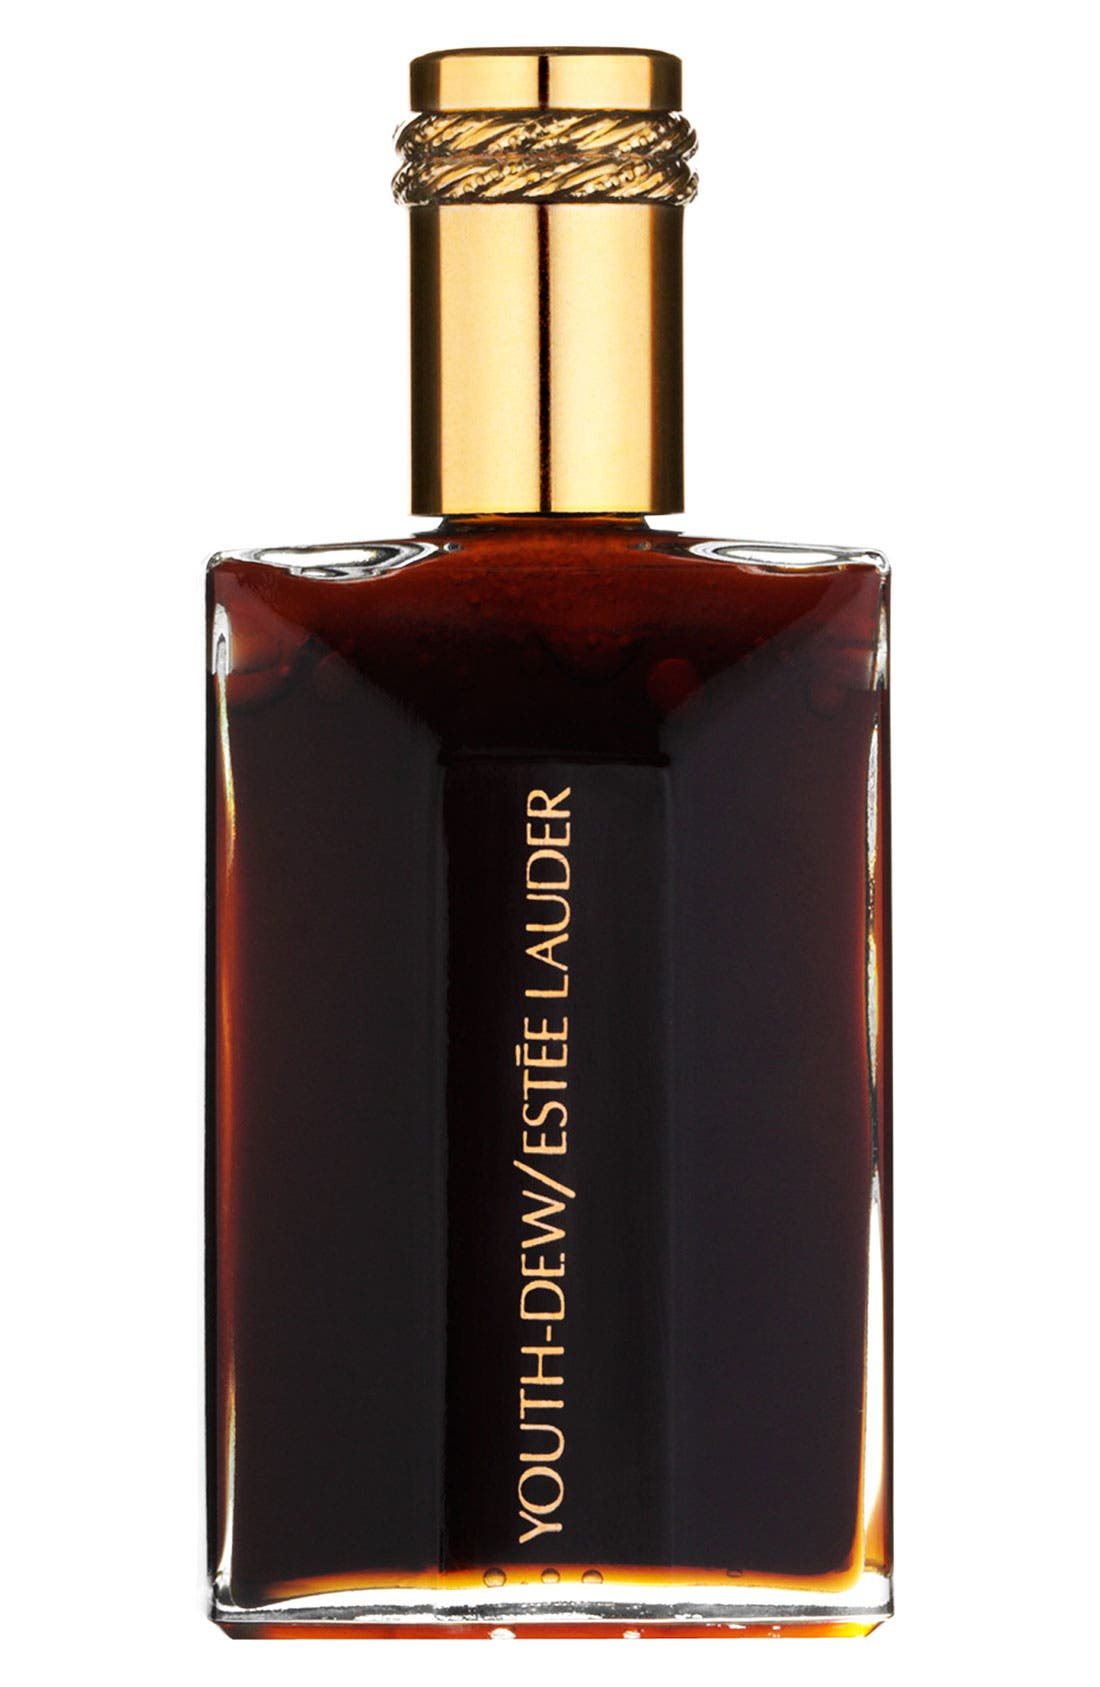 Estée Lauder Youth-Dew Bath Oil